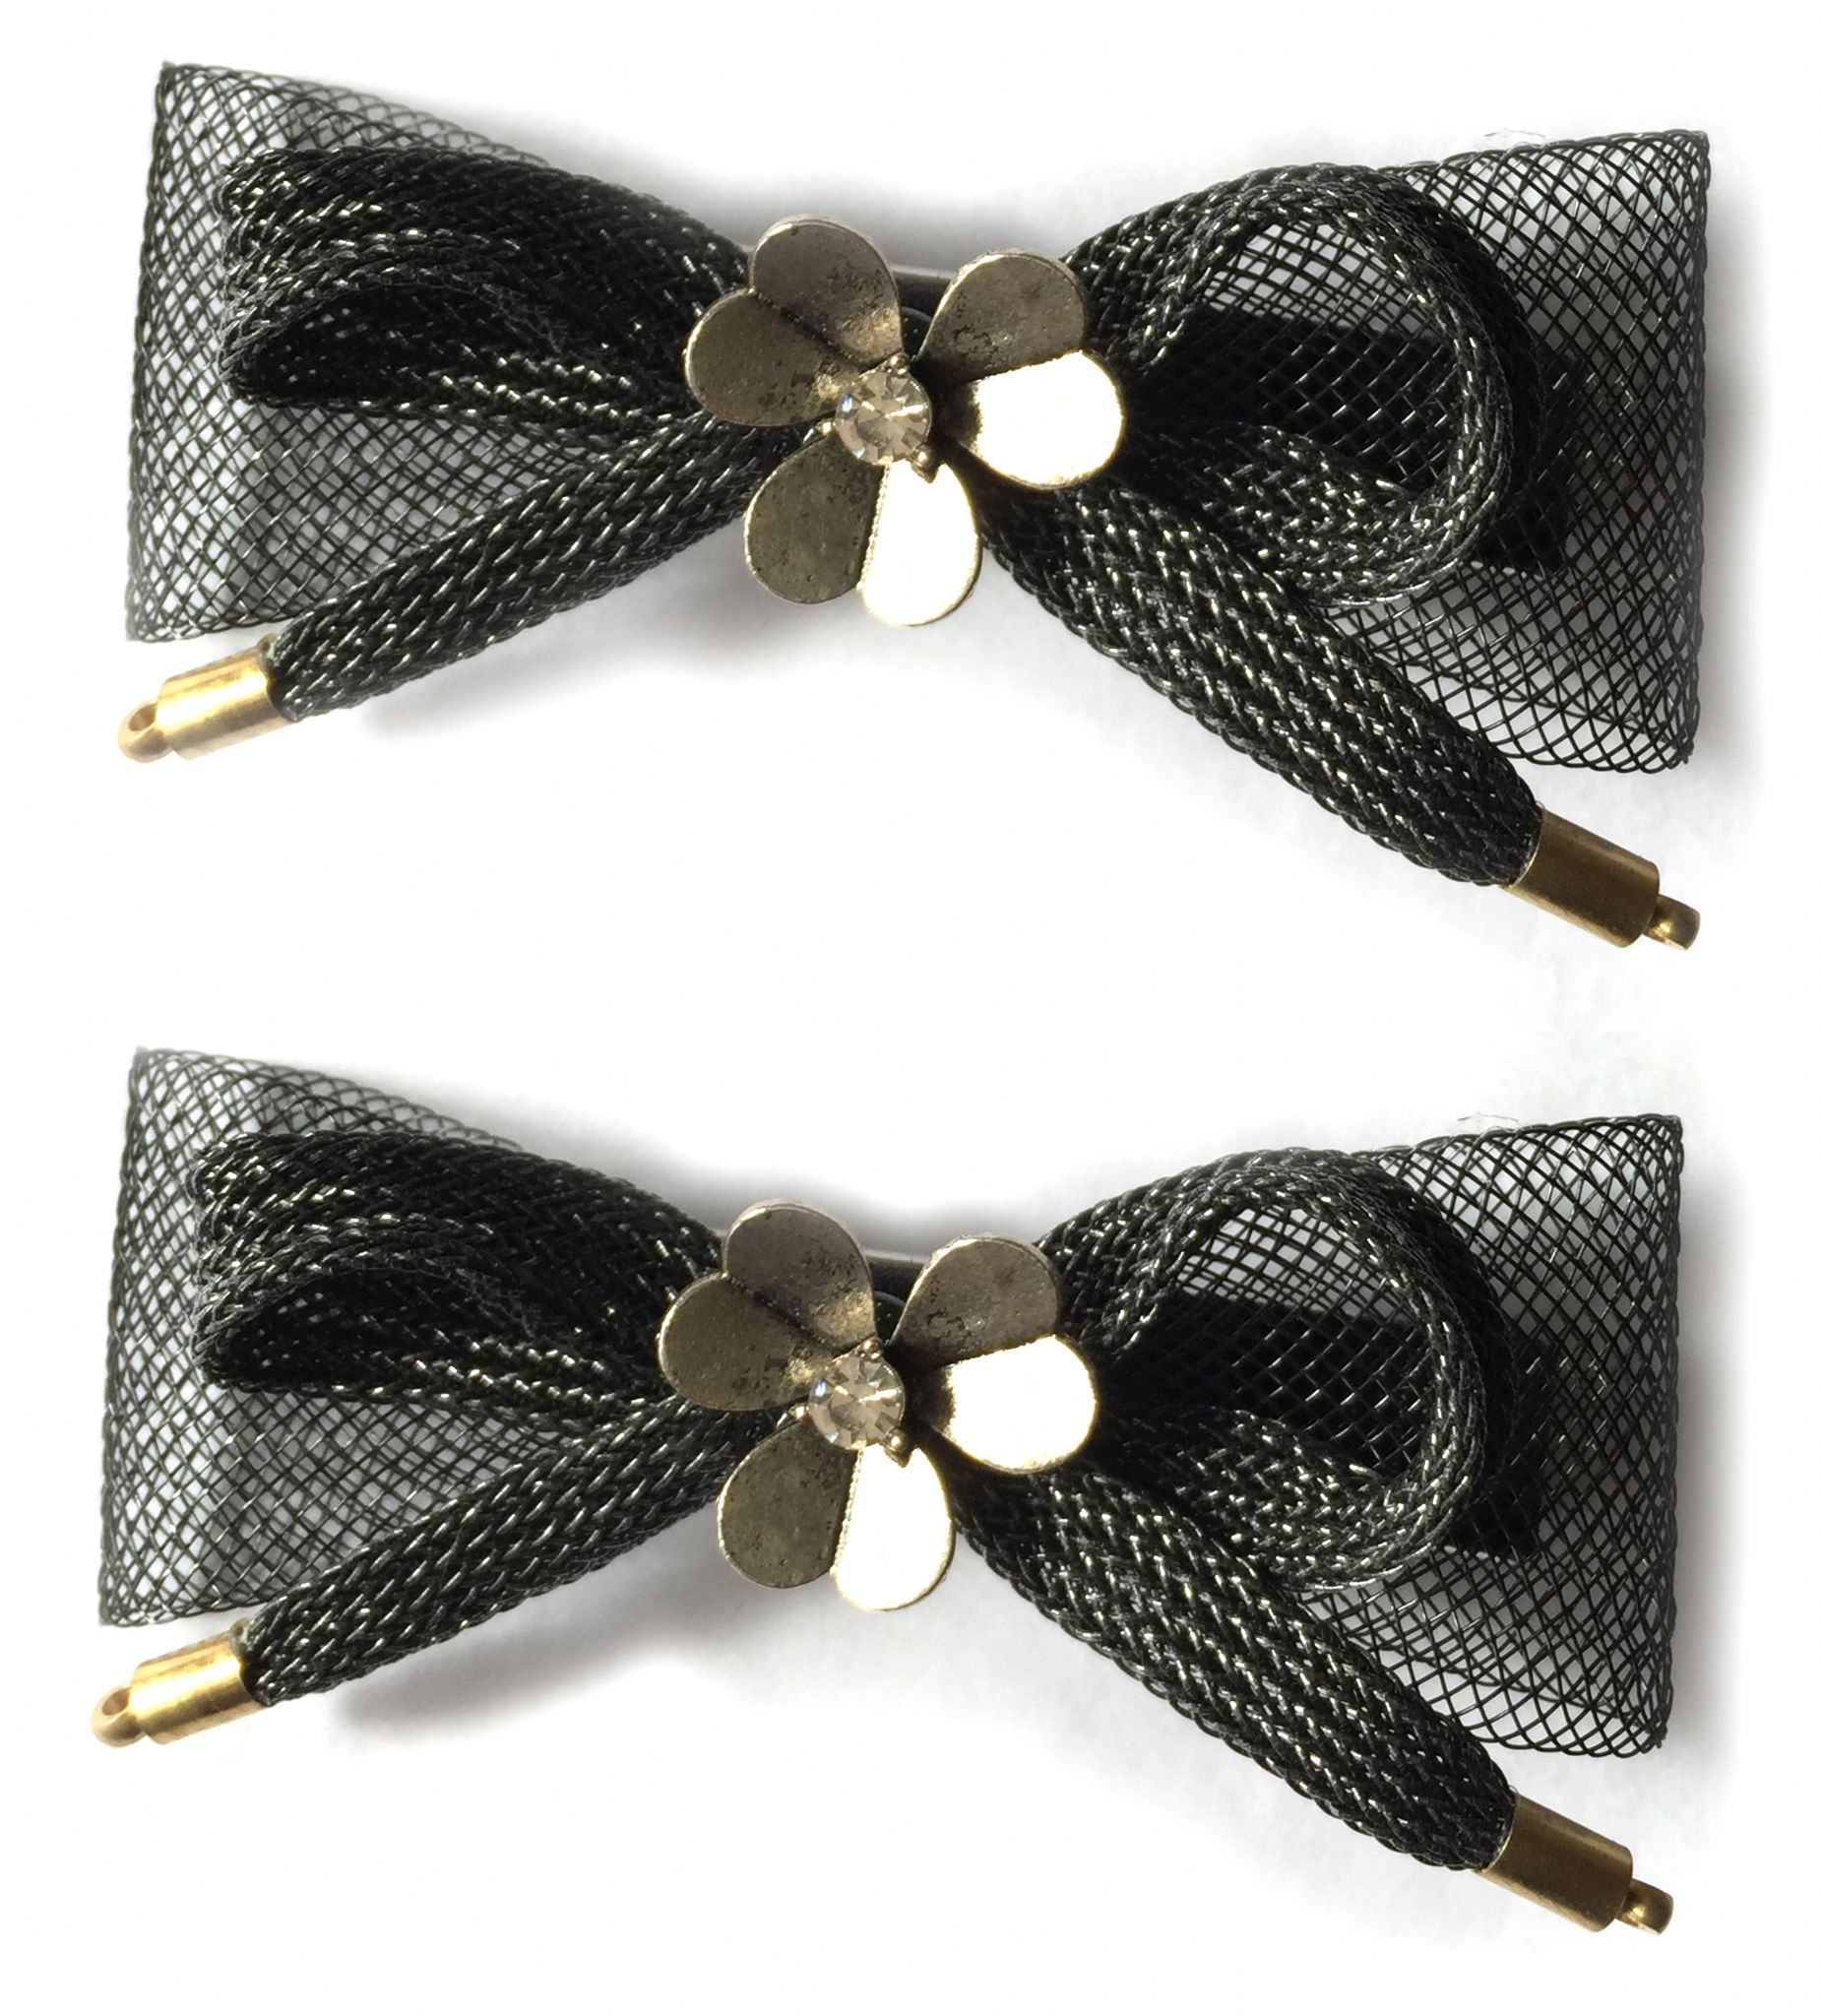 http://www.conmigolondon.co.uk/ekmps/shops/conmigo/images/1.-al0065-eye-catching-dark-grey-bow-with-silver-metal-flower-hair-slids-2-pieces-%5B5%5D-15533-p.jpg